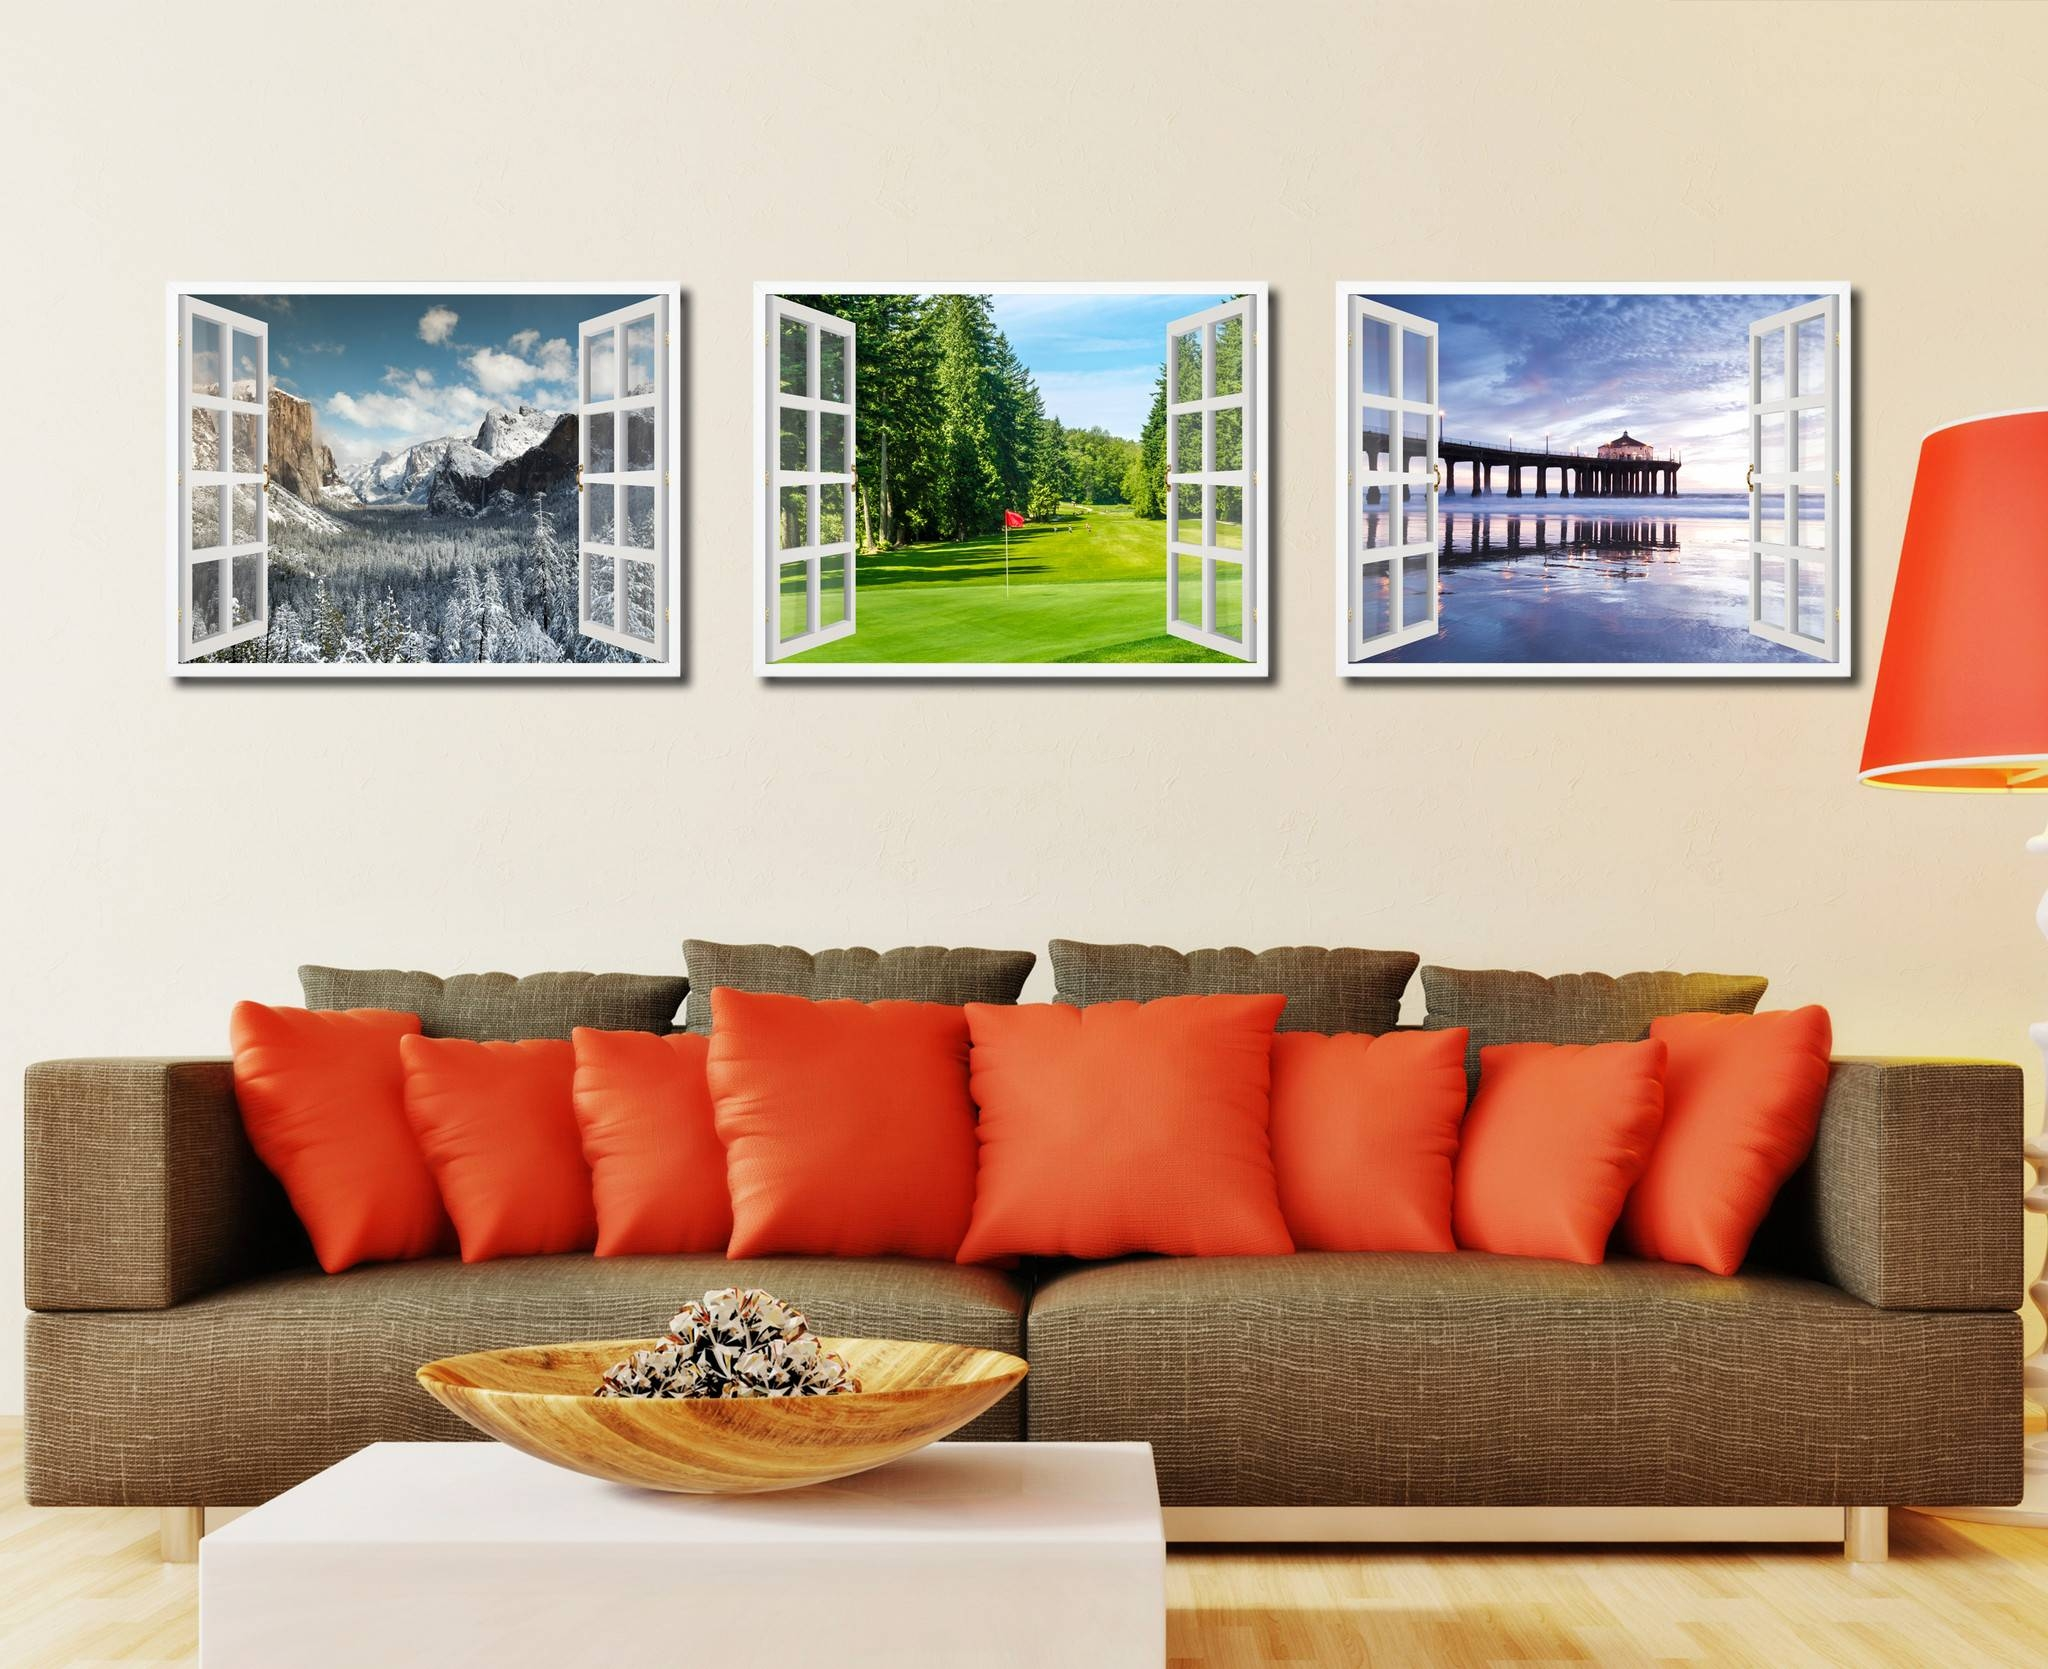 3d Wall Art Vancouver | Wallartideas Intended For Best And Newest Vancouver 3d Wall Art (View 2 of 20)